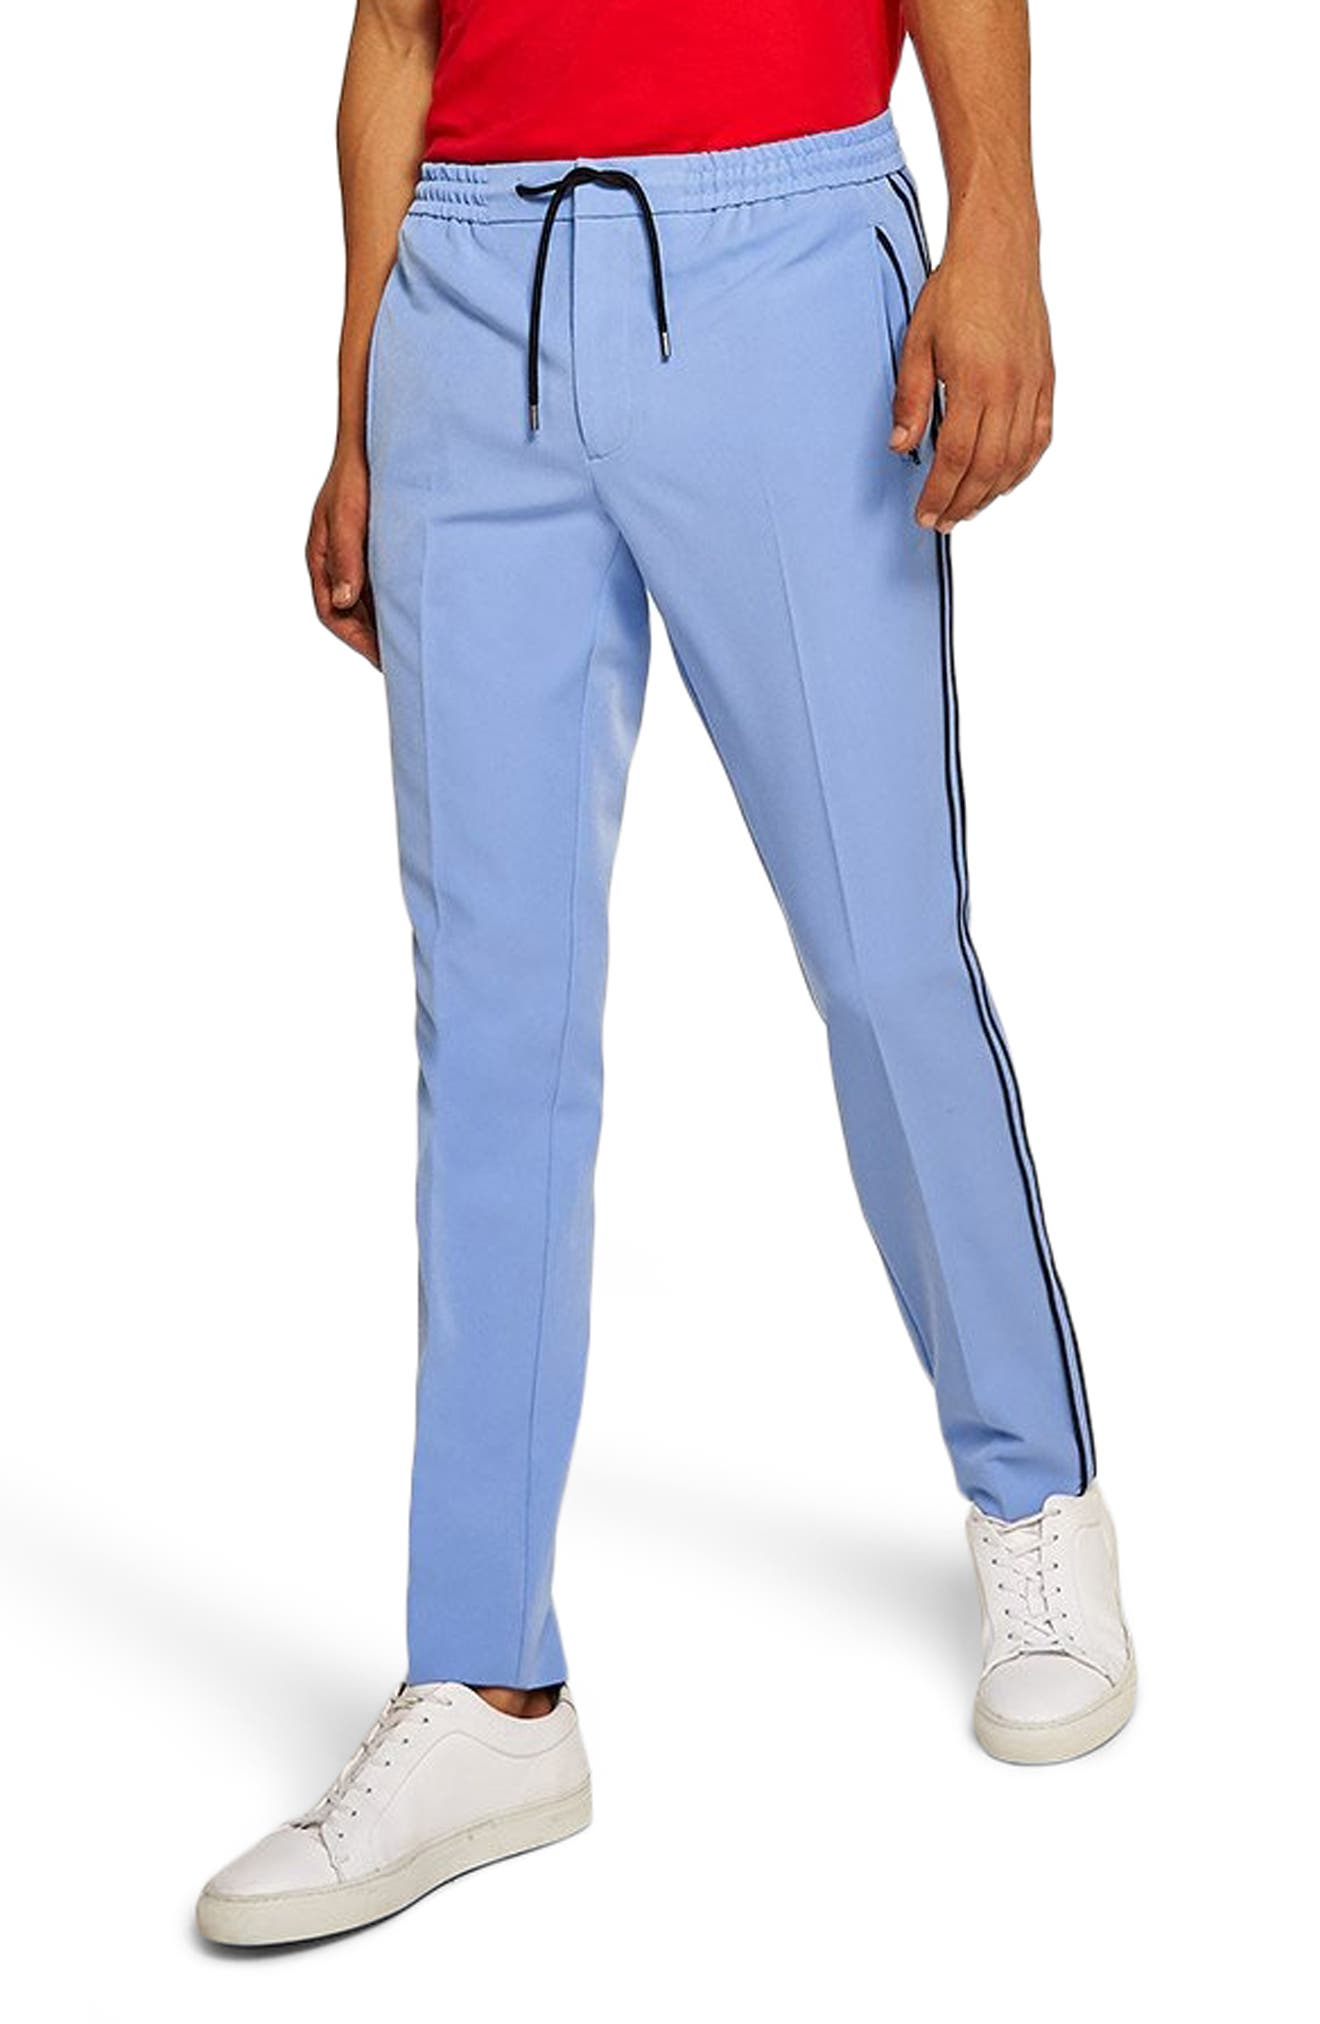 Binding Skinny Fit Jogger Pants,                         Main,                         color, MID BLUE